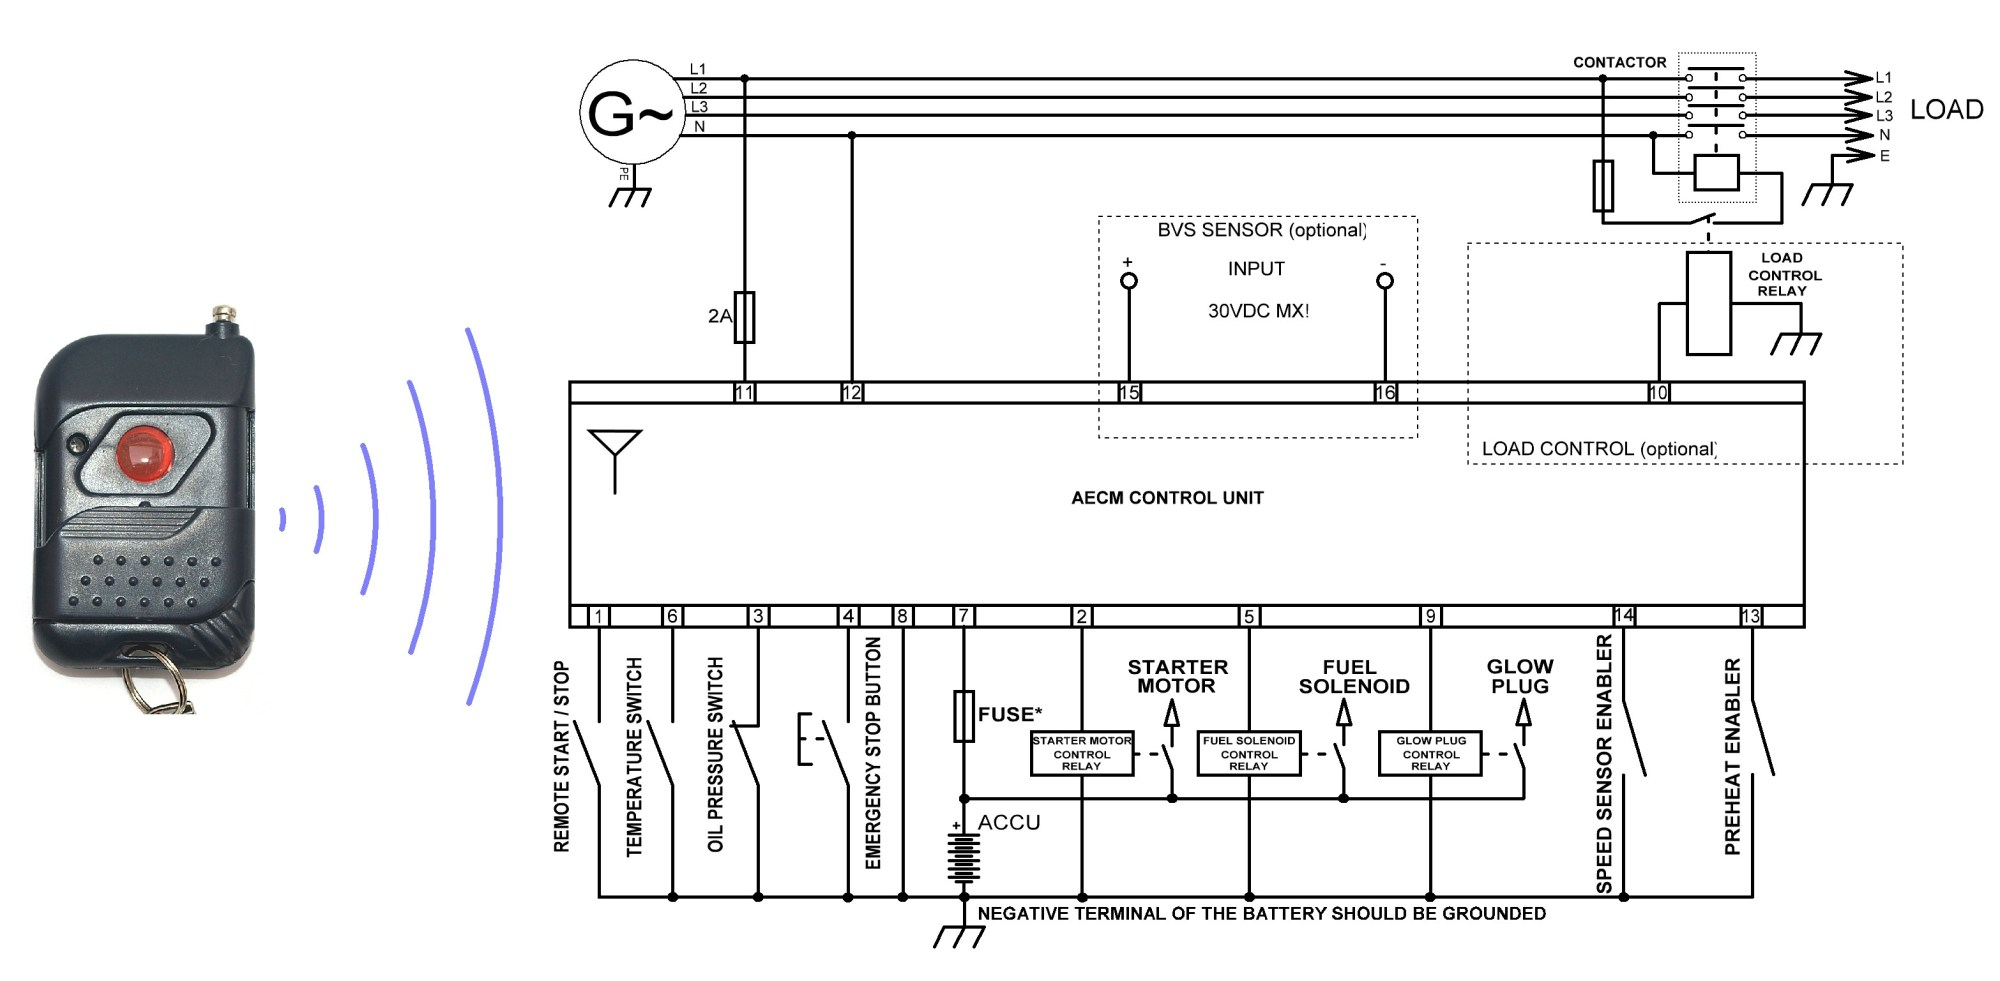 hight resolution of 2000 volkswagen pat fuse box diagram also 1961 cadillac for sale rh abetter pw home fuse